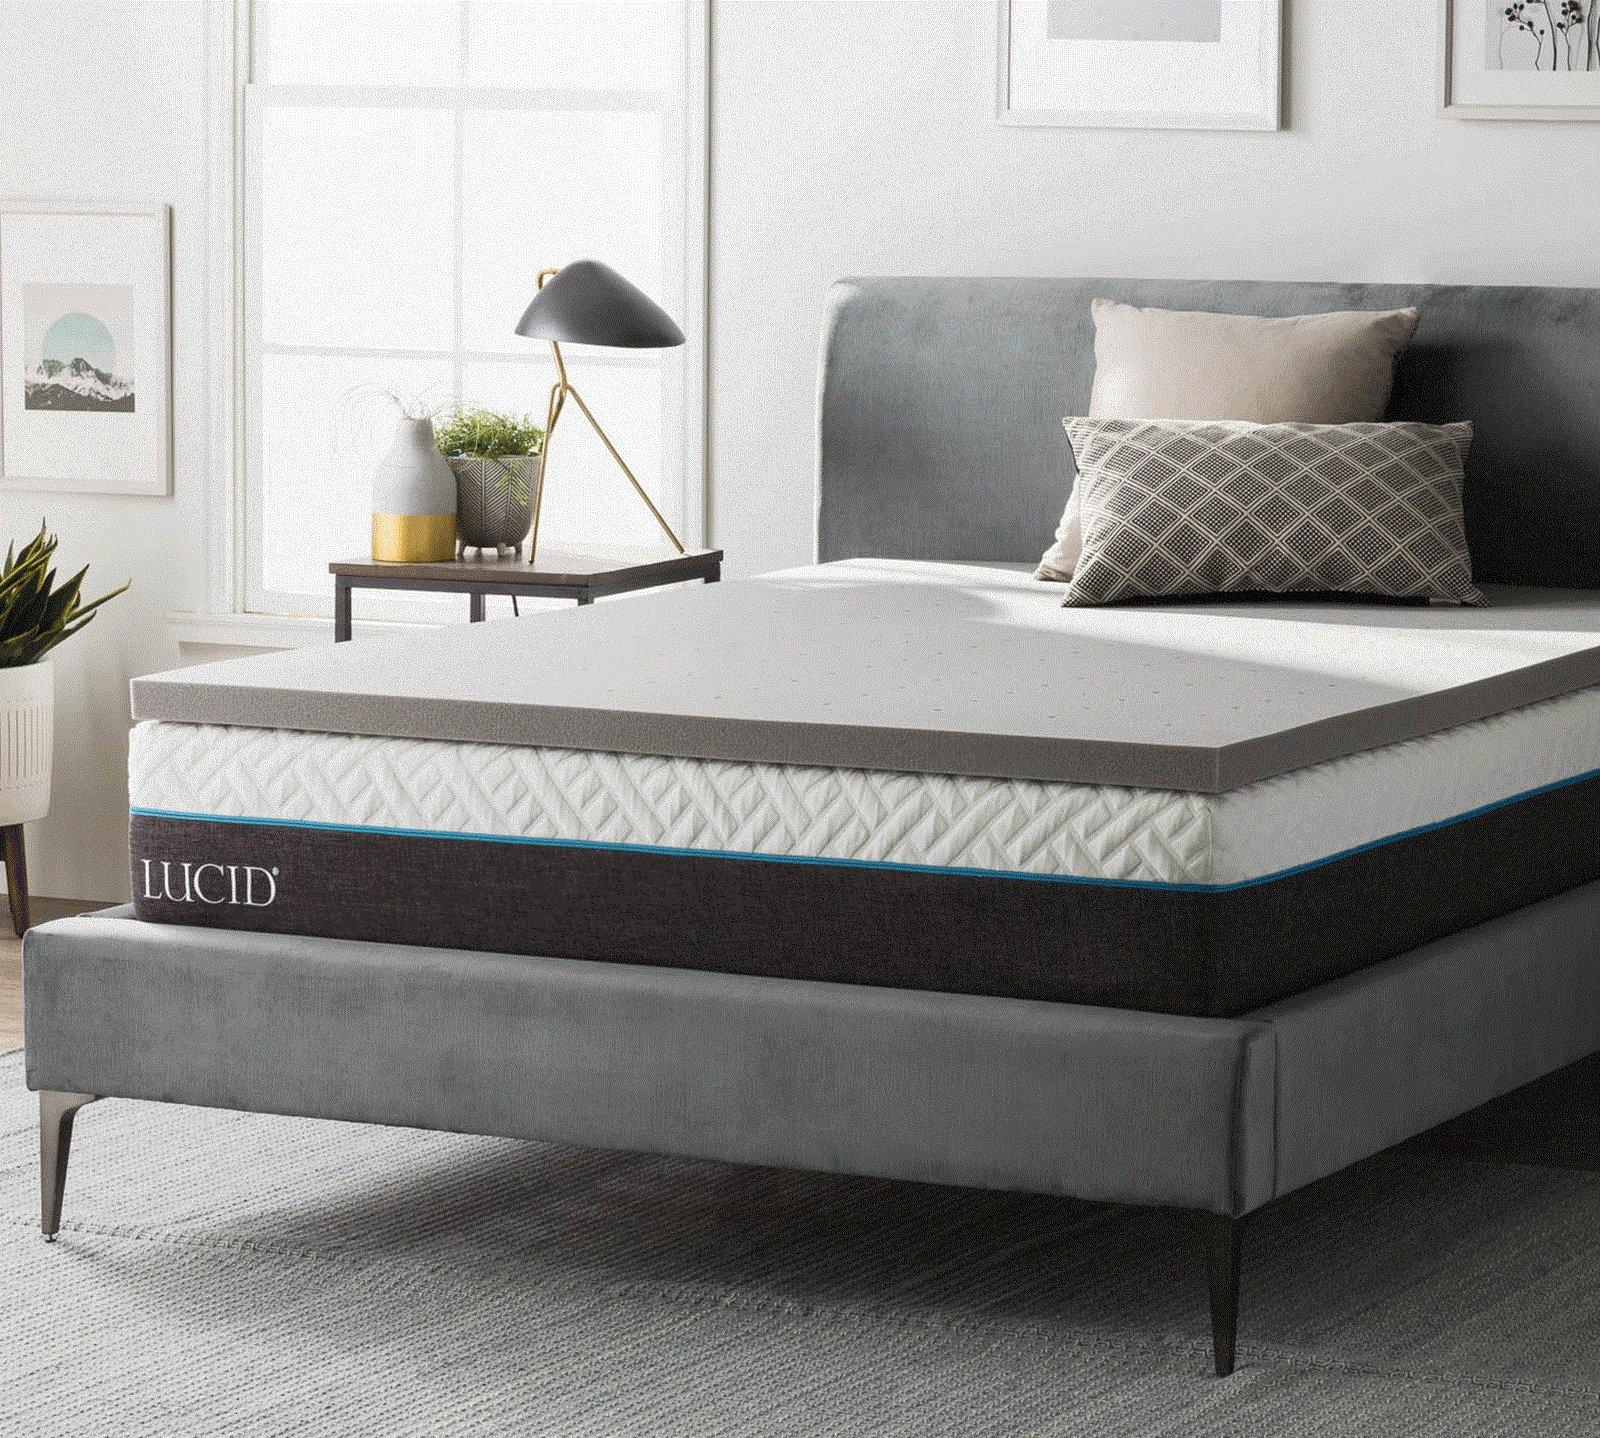 Lucid King 2 Inch Bamboo Charcoal Memory Foam Mattress Topper